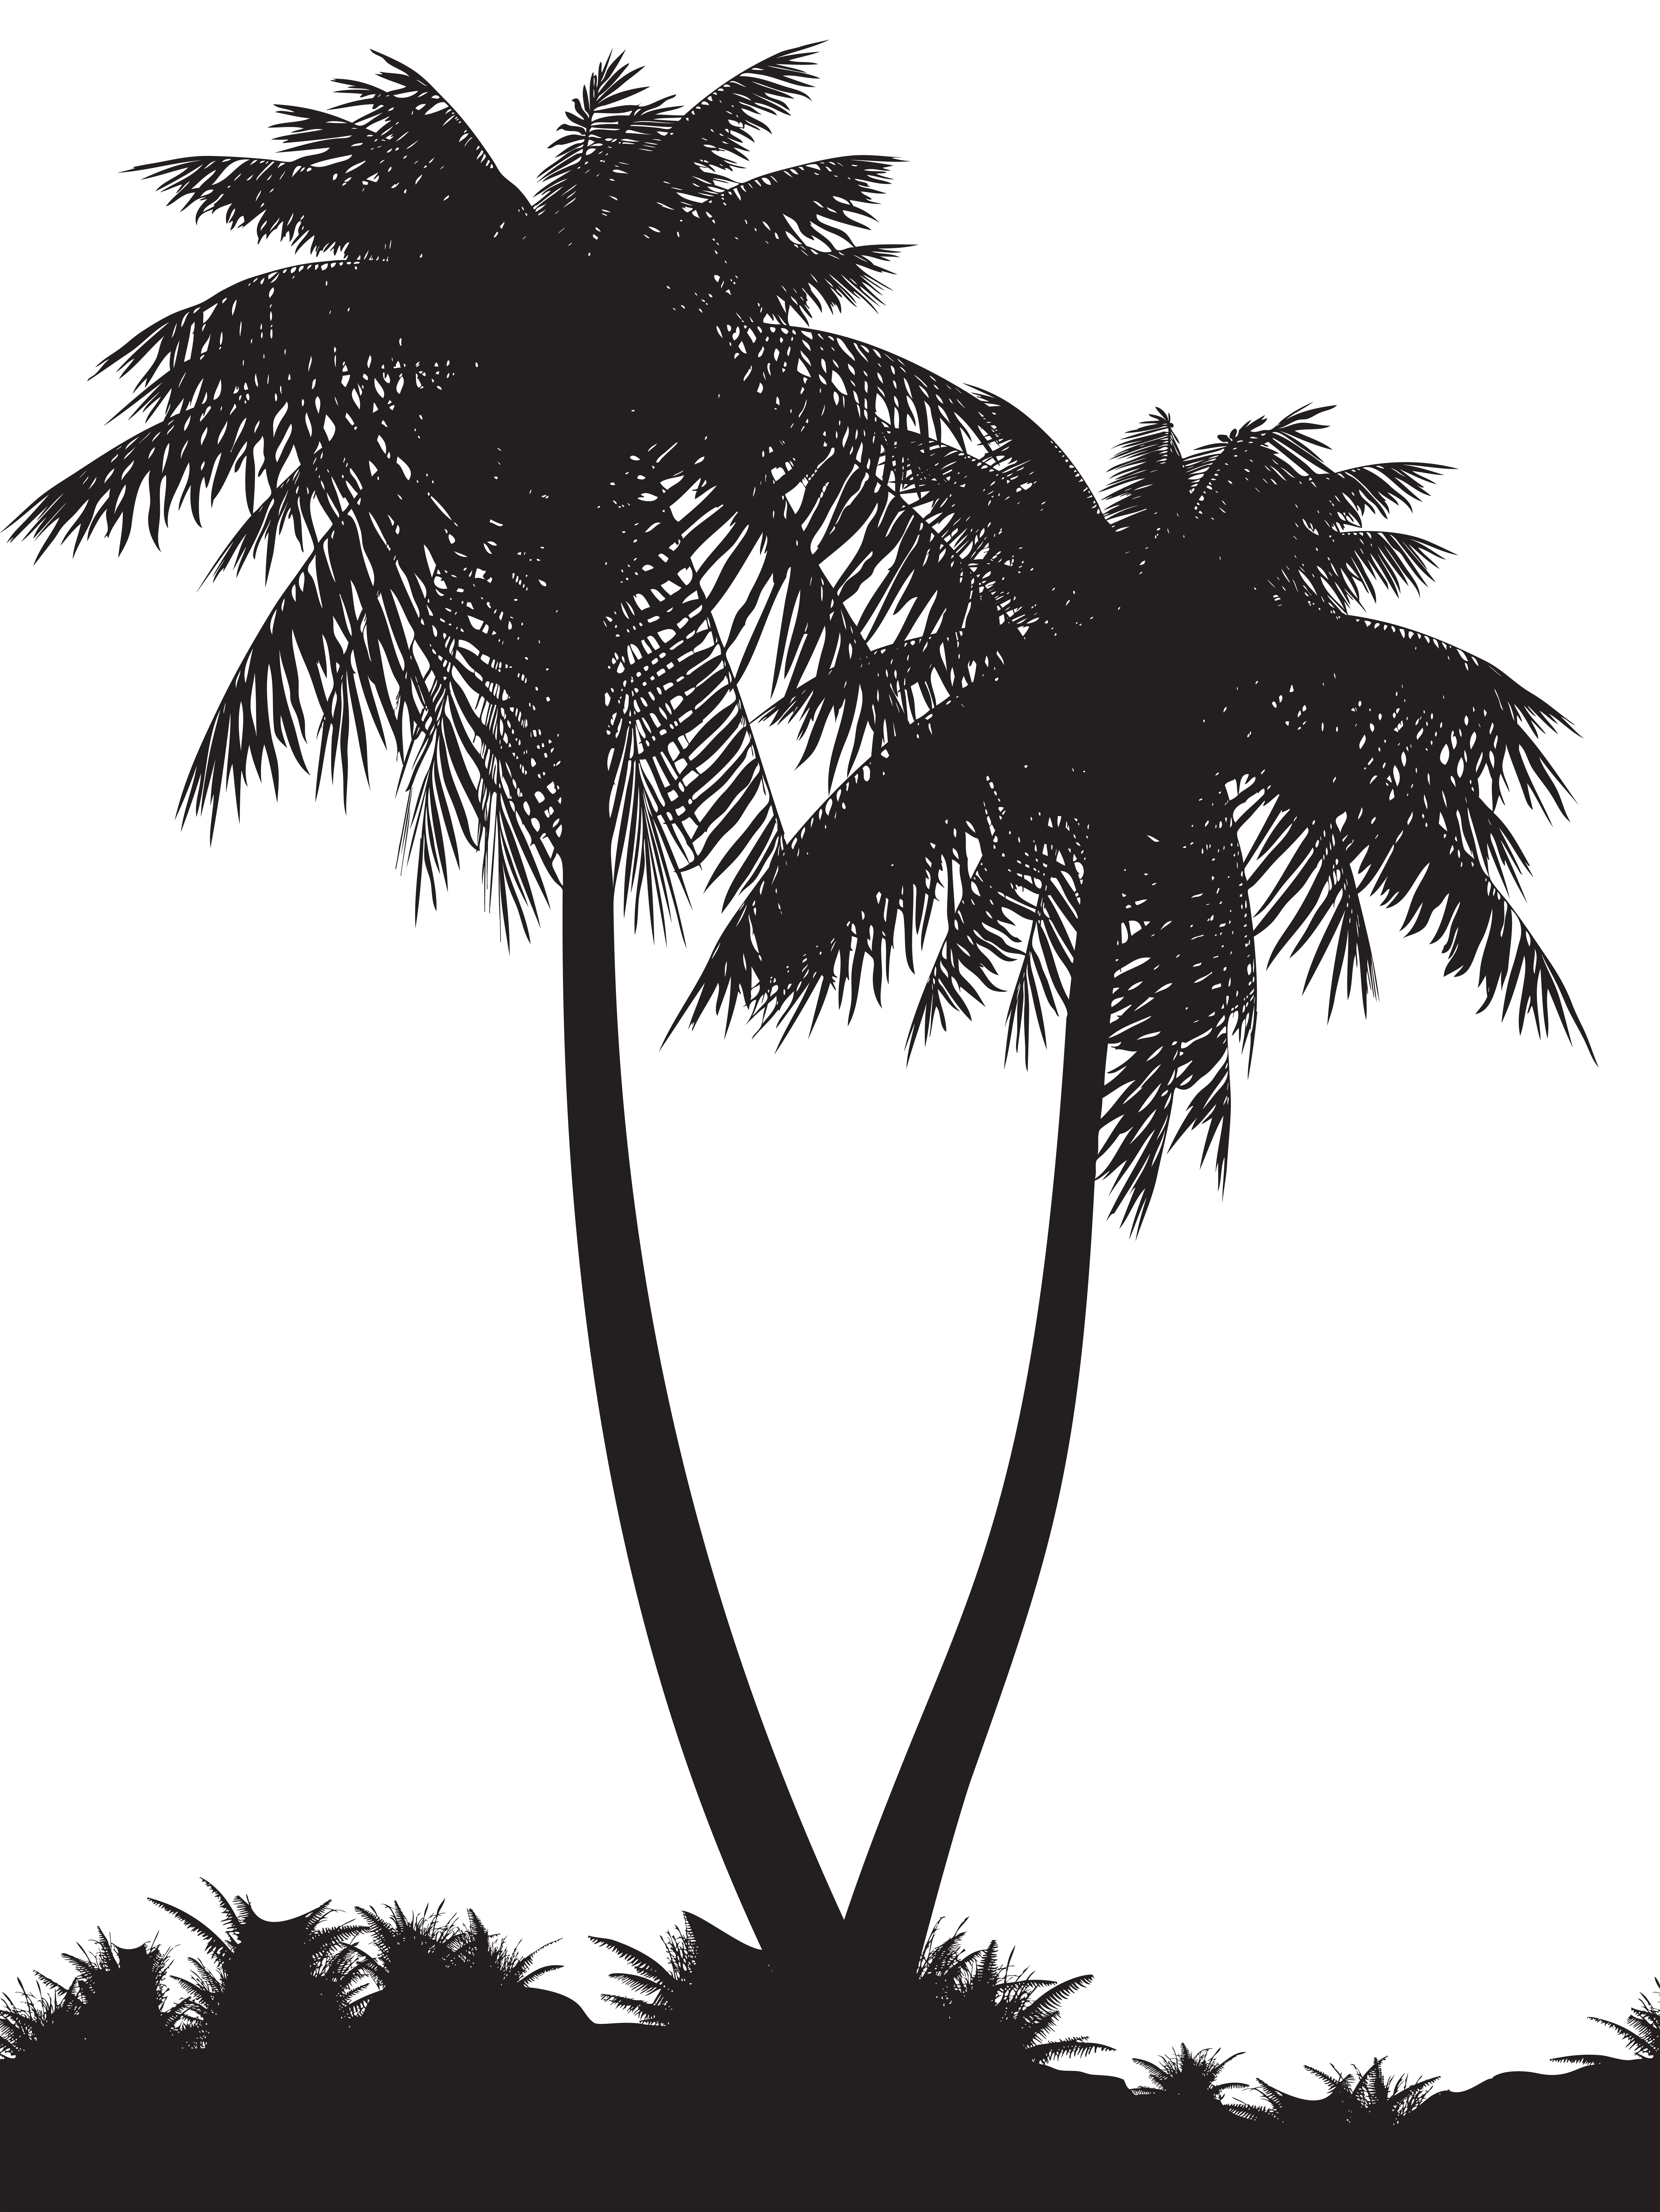 Palm tree silhouette png. Trees clip art image